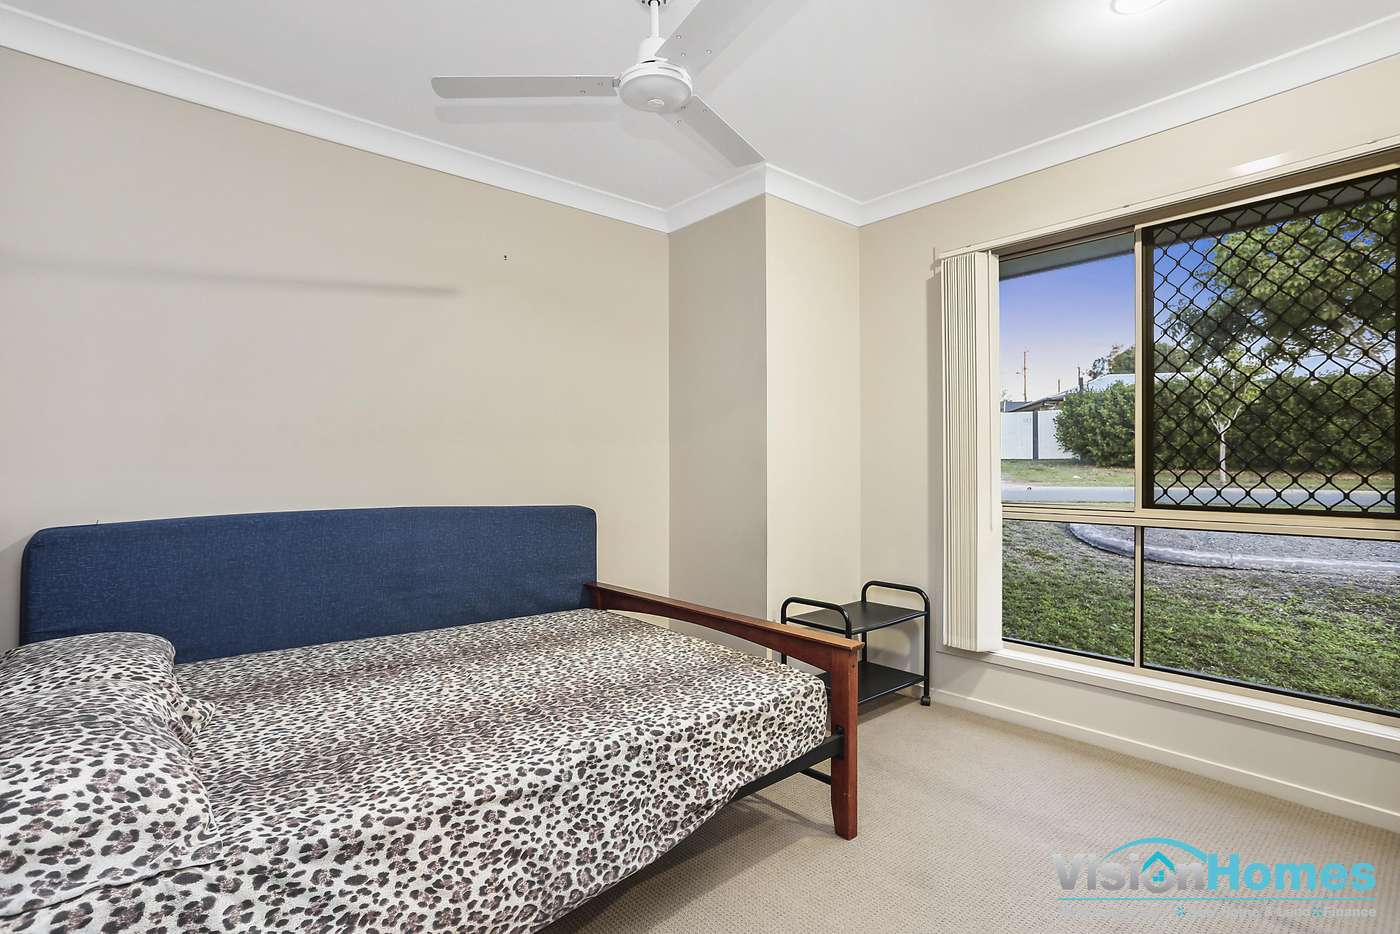 Seventh view of Homely house listing, 52 ARGULE STREET, Hillcrest QLD 4118